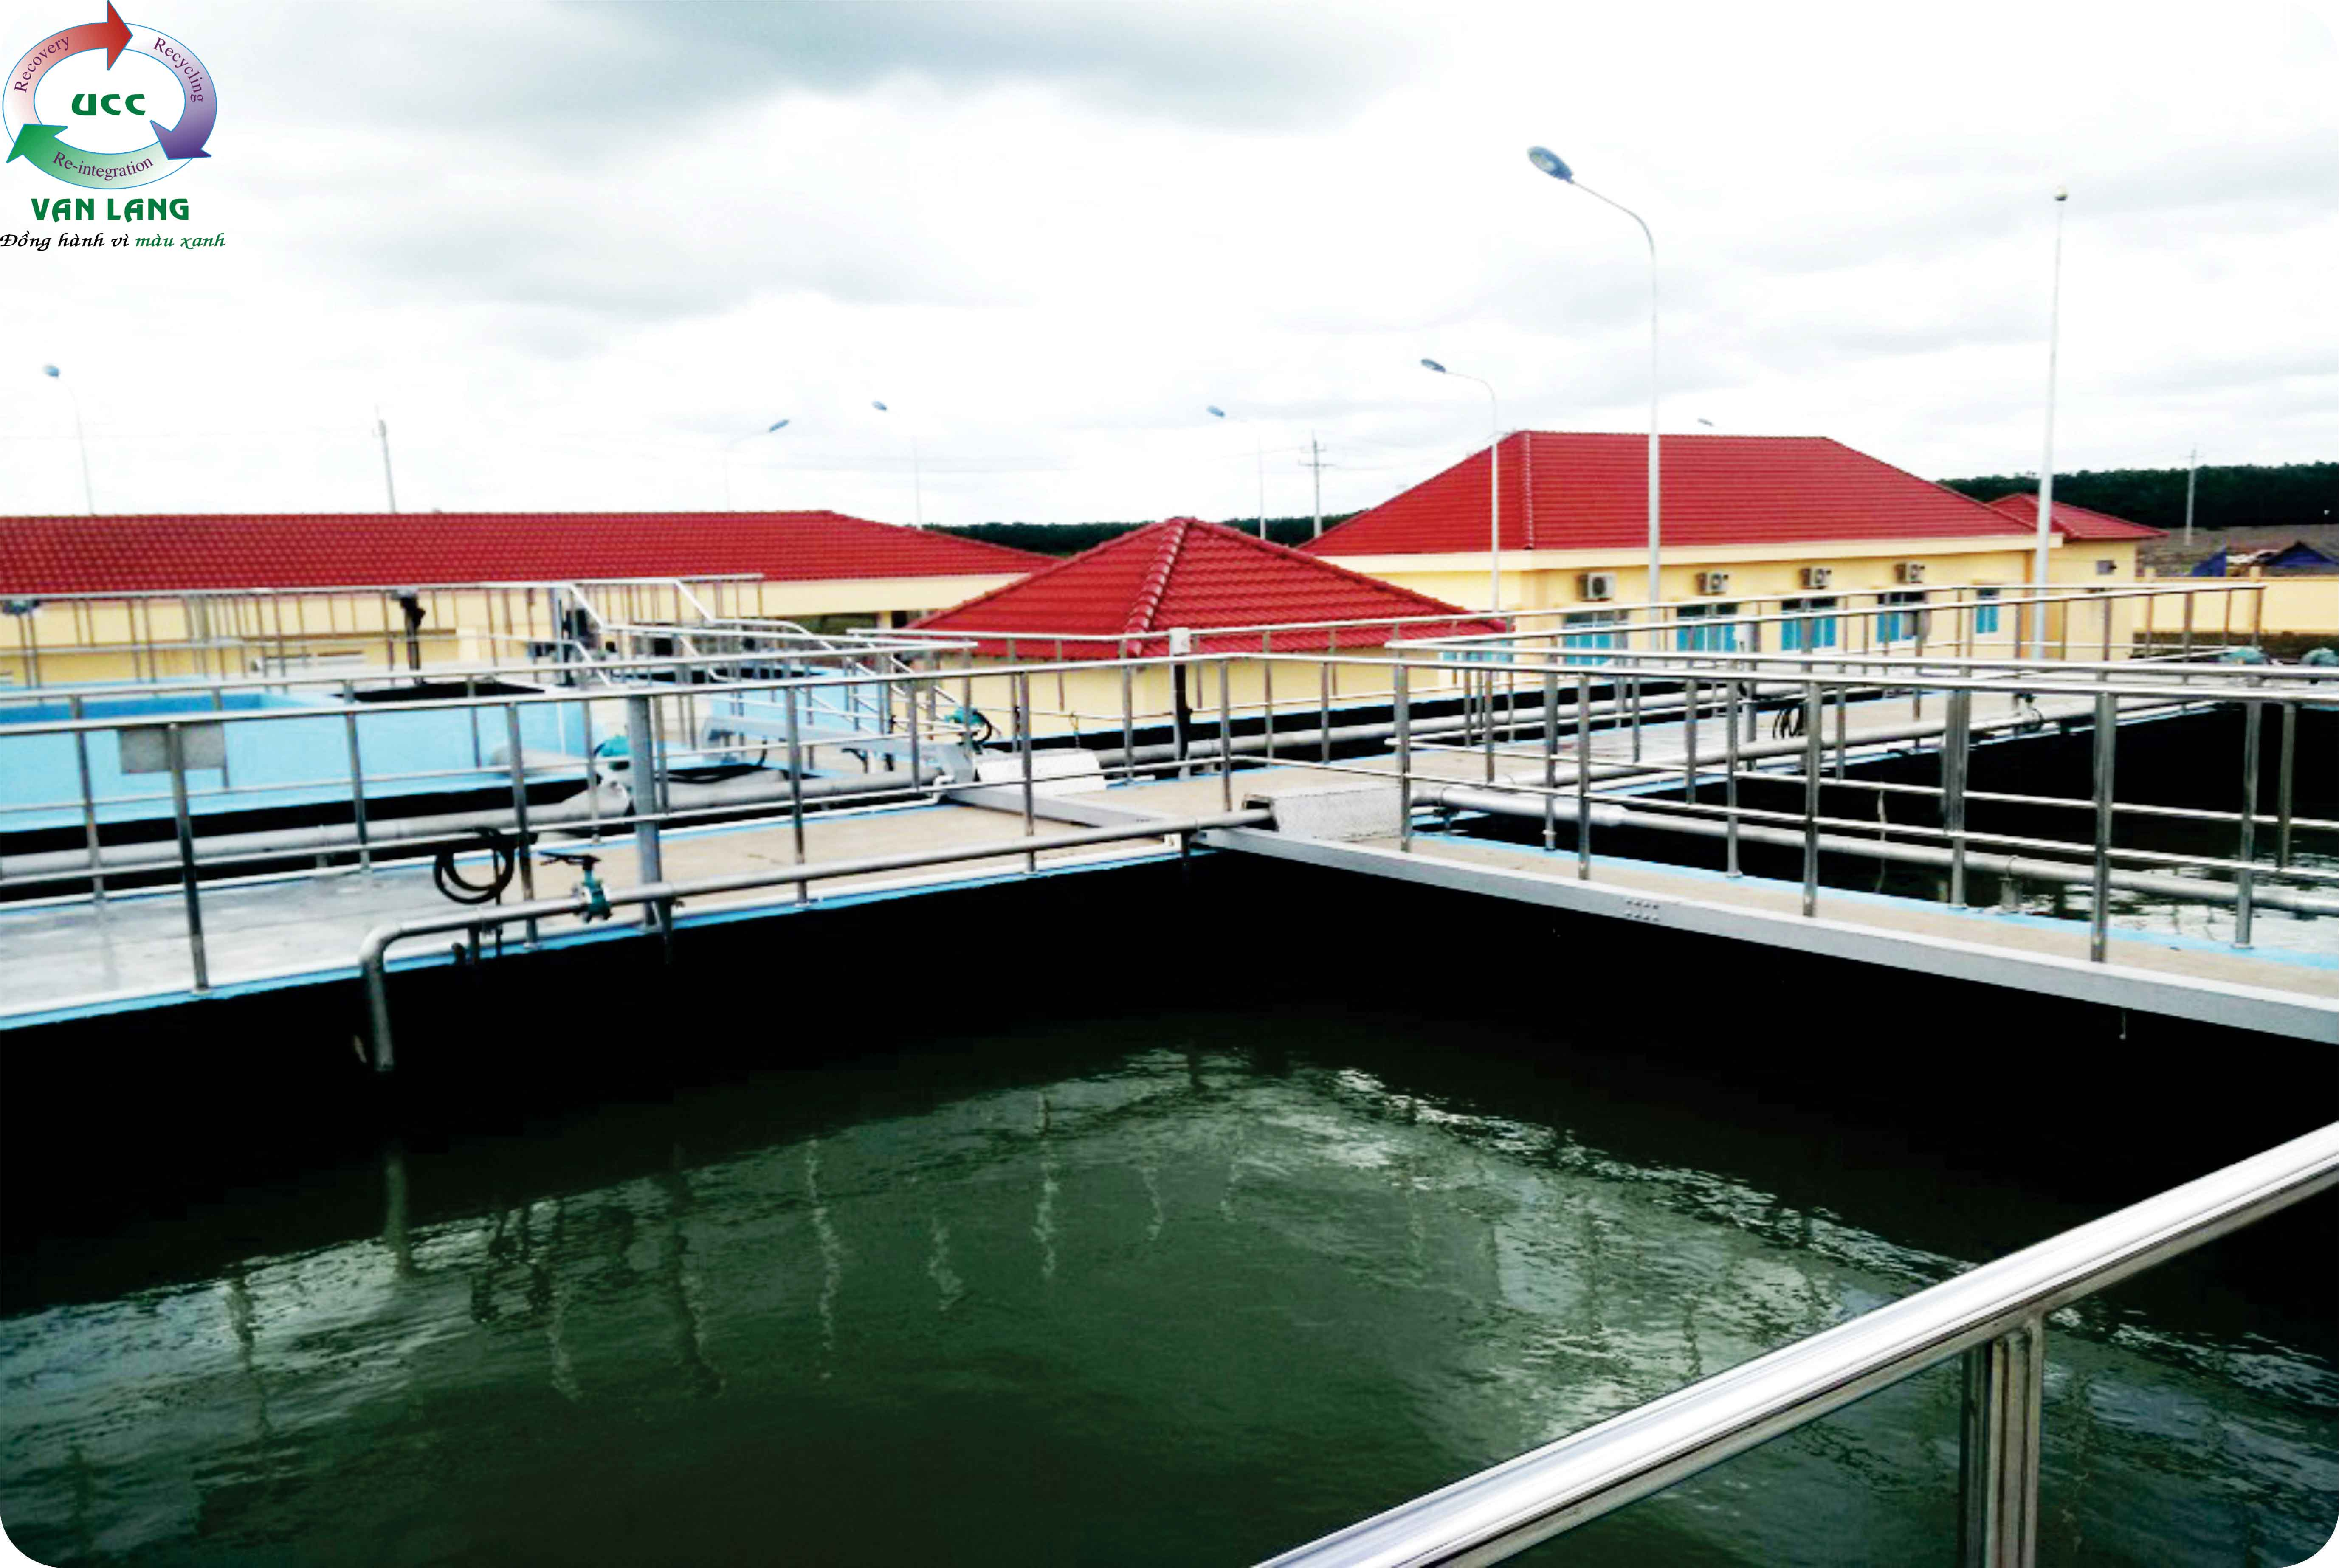 THE WASTEWATER TREATMENT PLANT OF NAM DONG PHU INDUSTRIAL ZONE (STAGE 1)